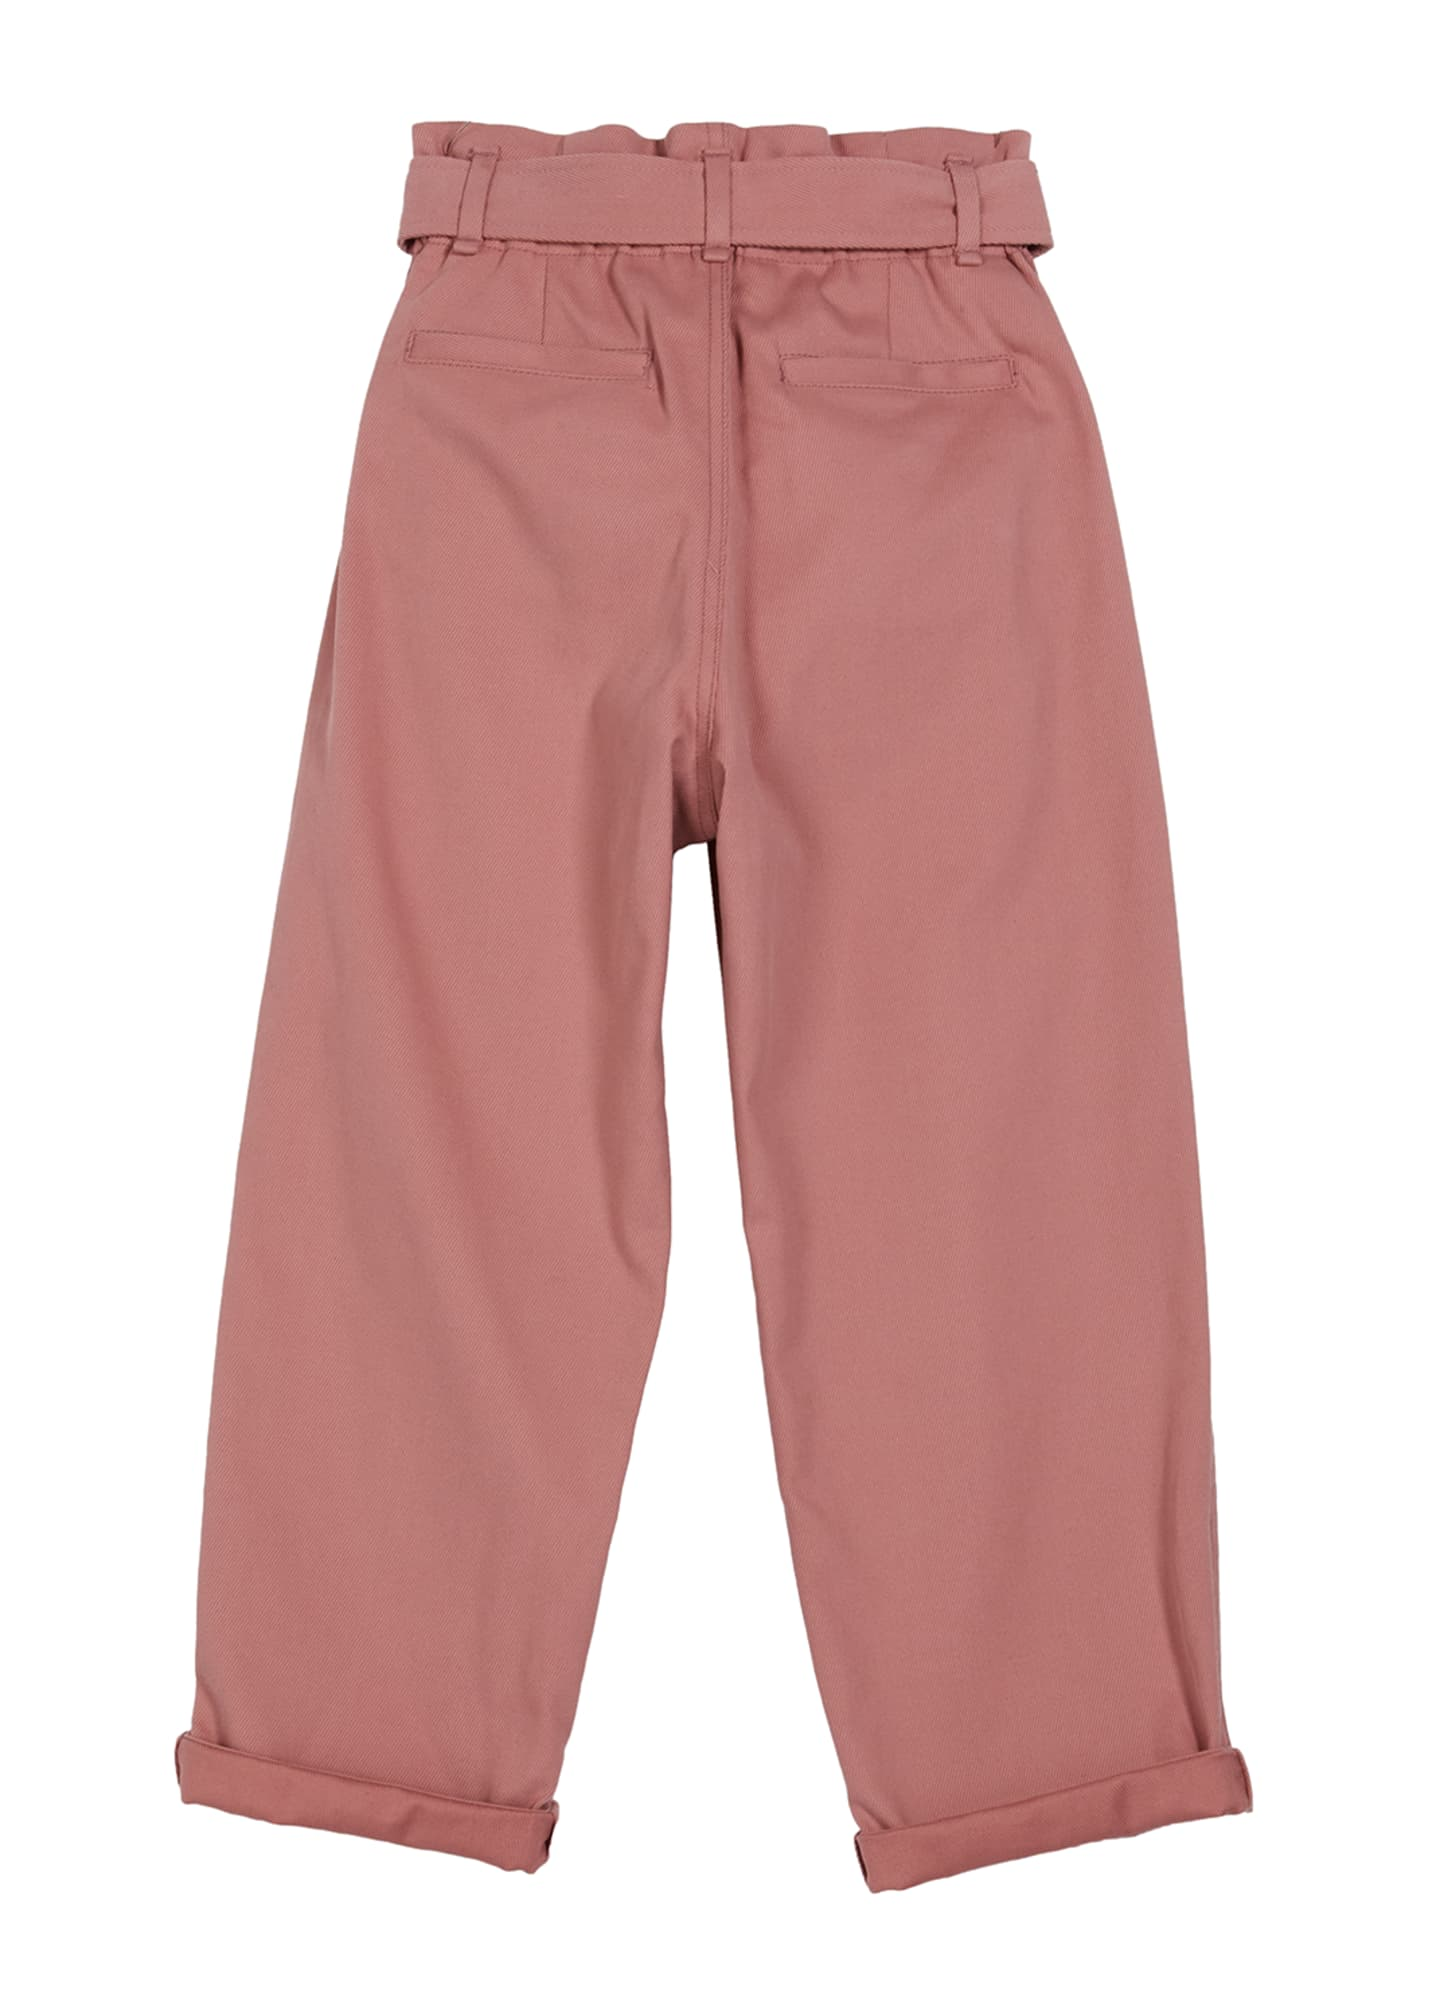 Image 2 of 2: Girl's Cotton Gabardine Pleated Pants w/ Self-Belt, Size 12-14